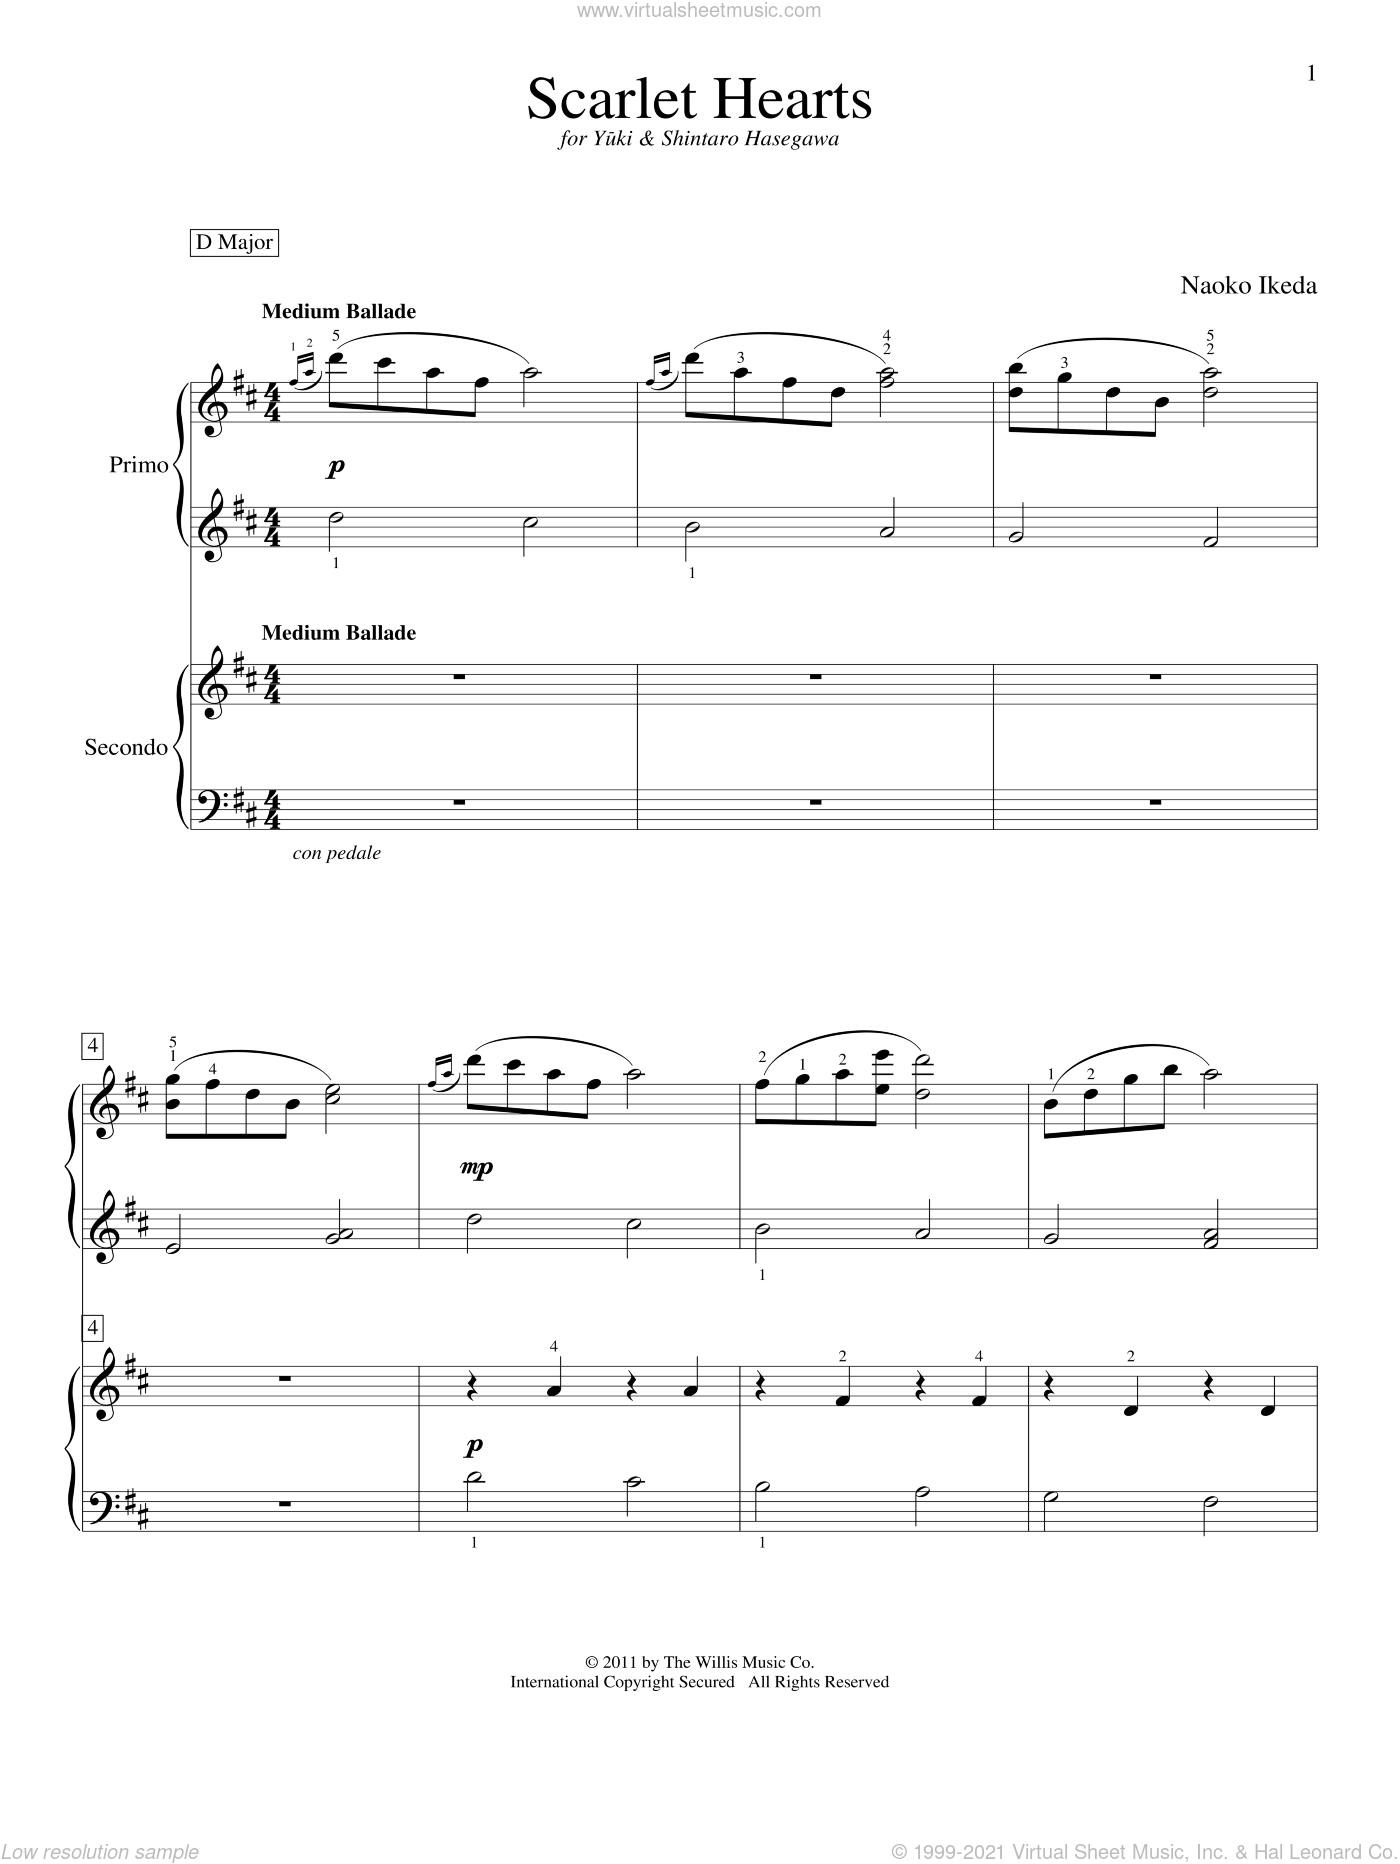 Scarlet Hearts sheet music for piano four hands (duets) by Naoko Ikeda